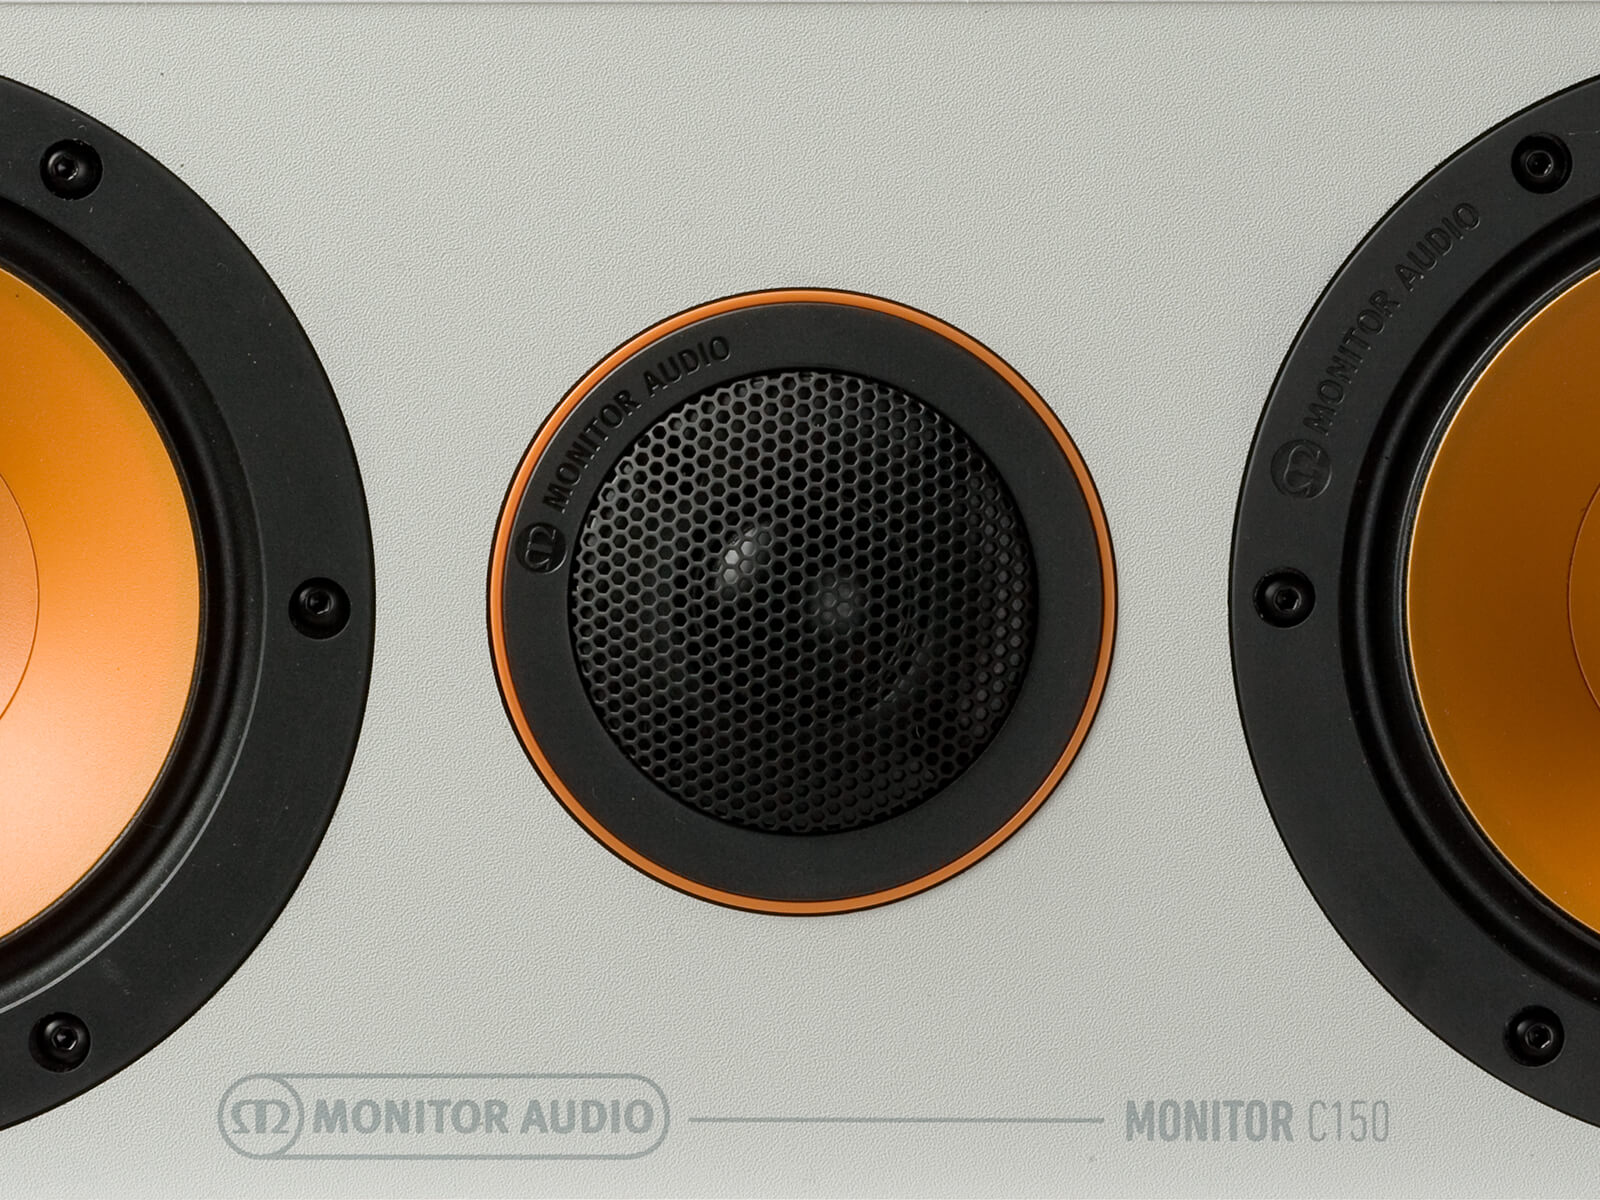 Monitor C150, centre channel speakers, front detail.